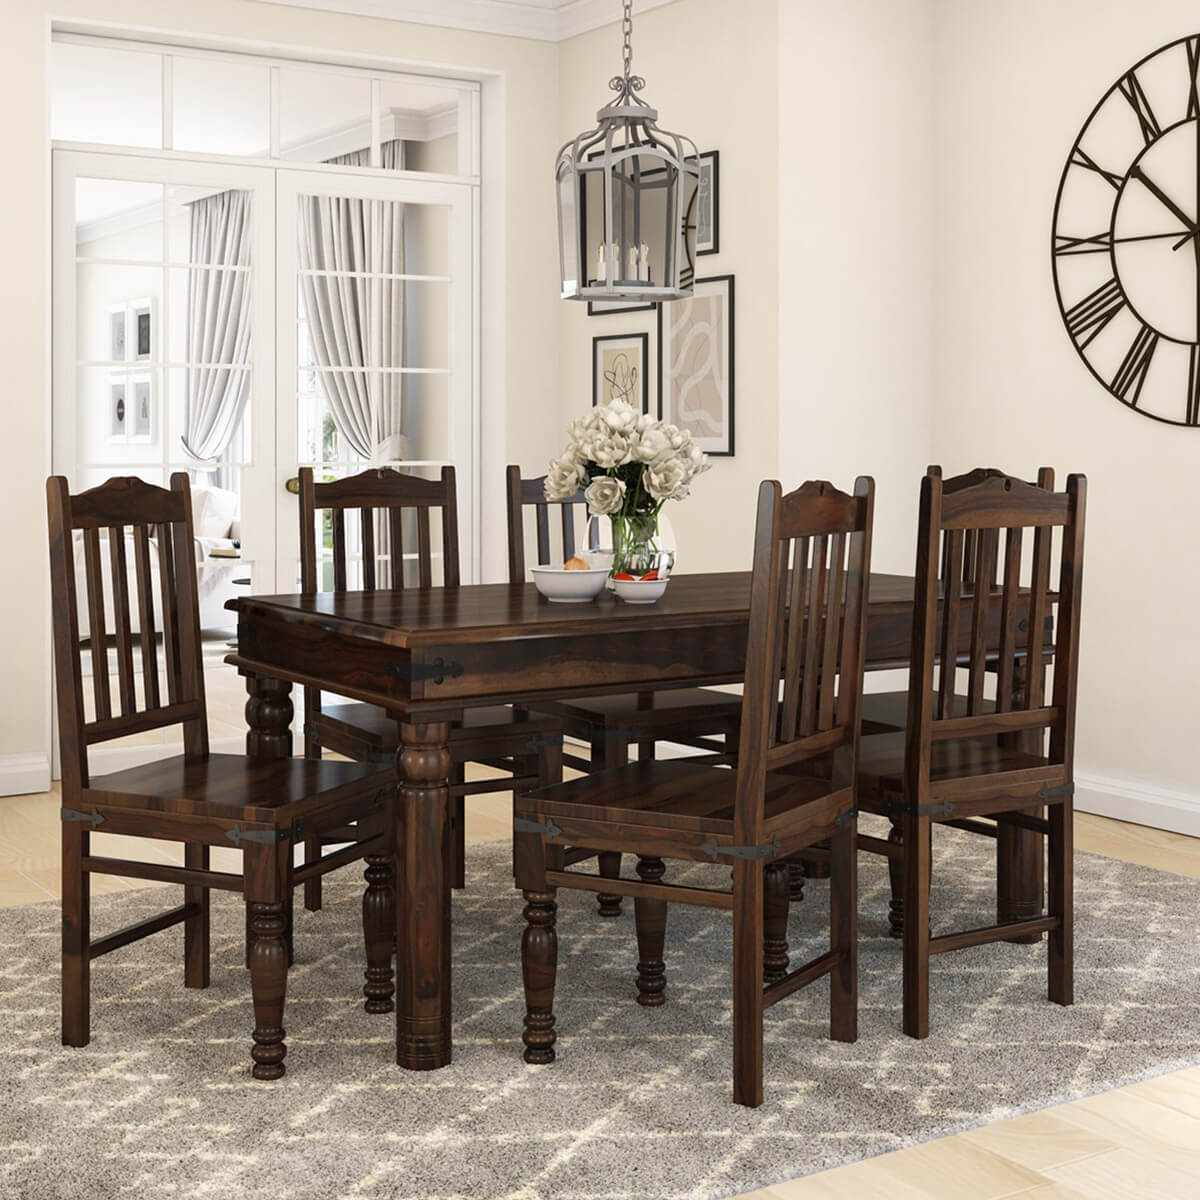 oklahoma farmhouse traditional 5pc solid wood country on solid wood dining table id=55243